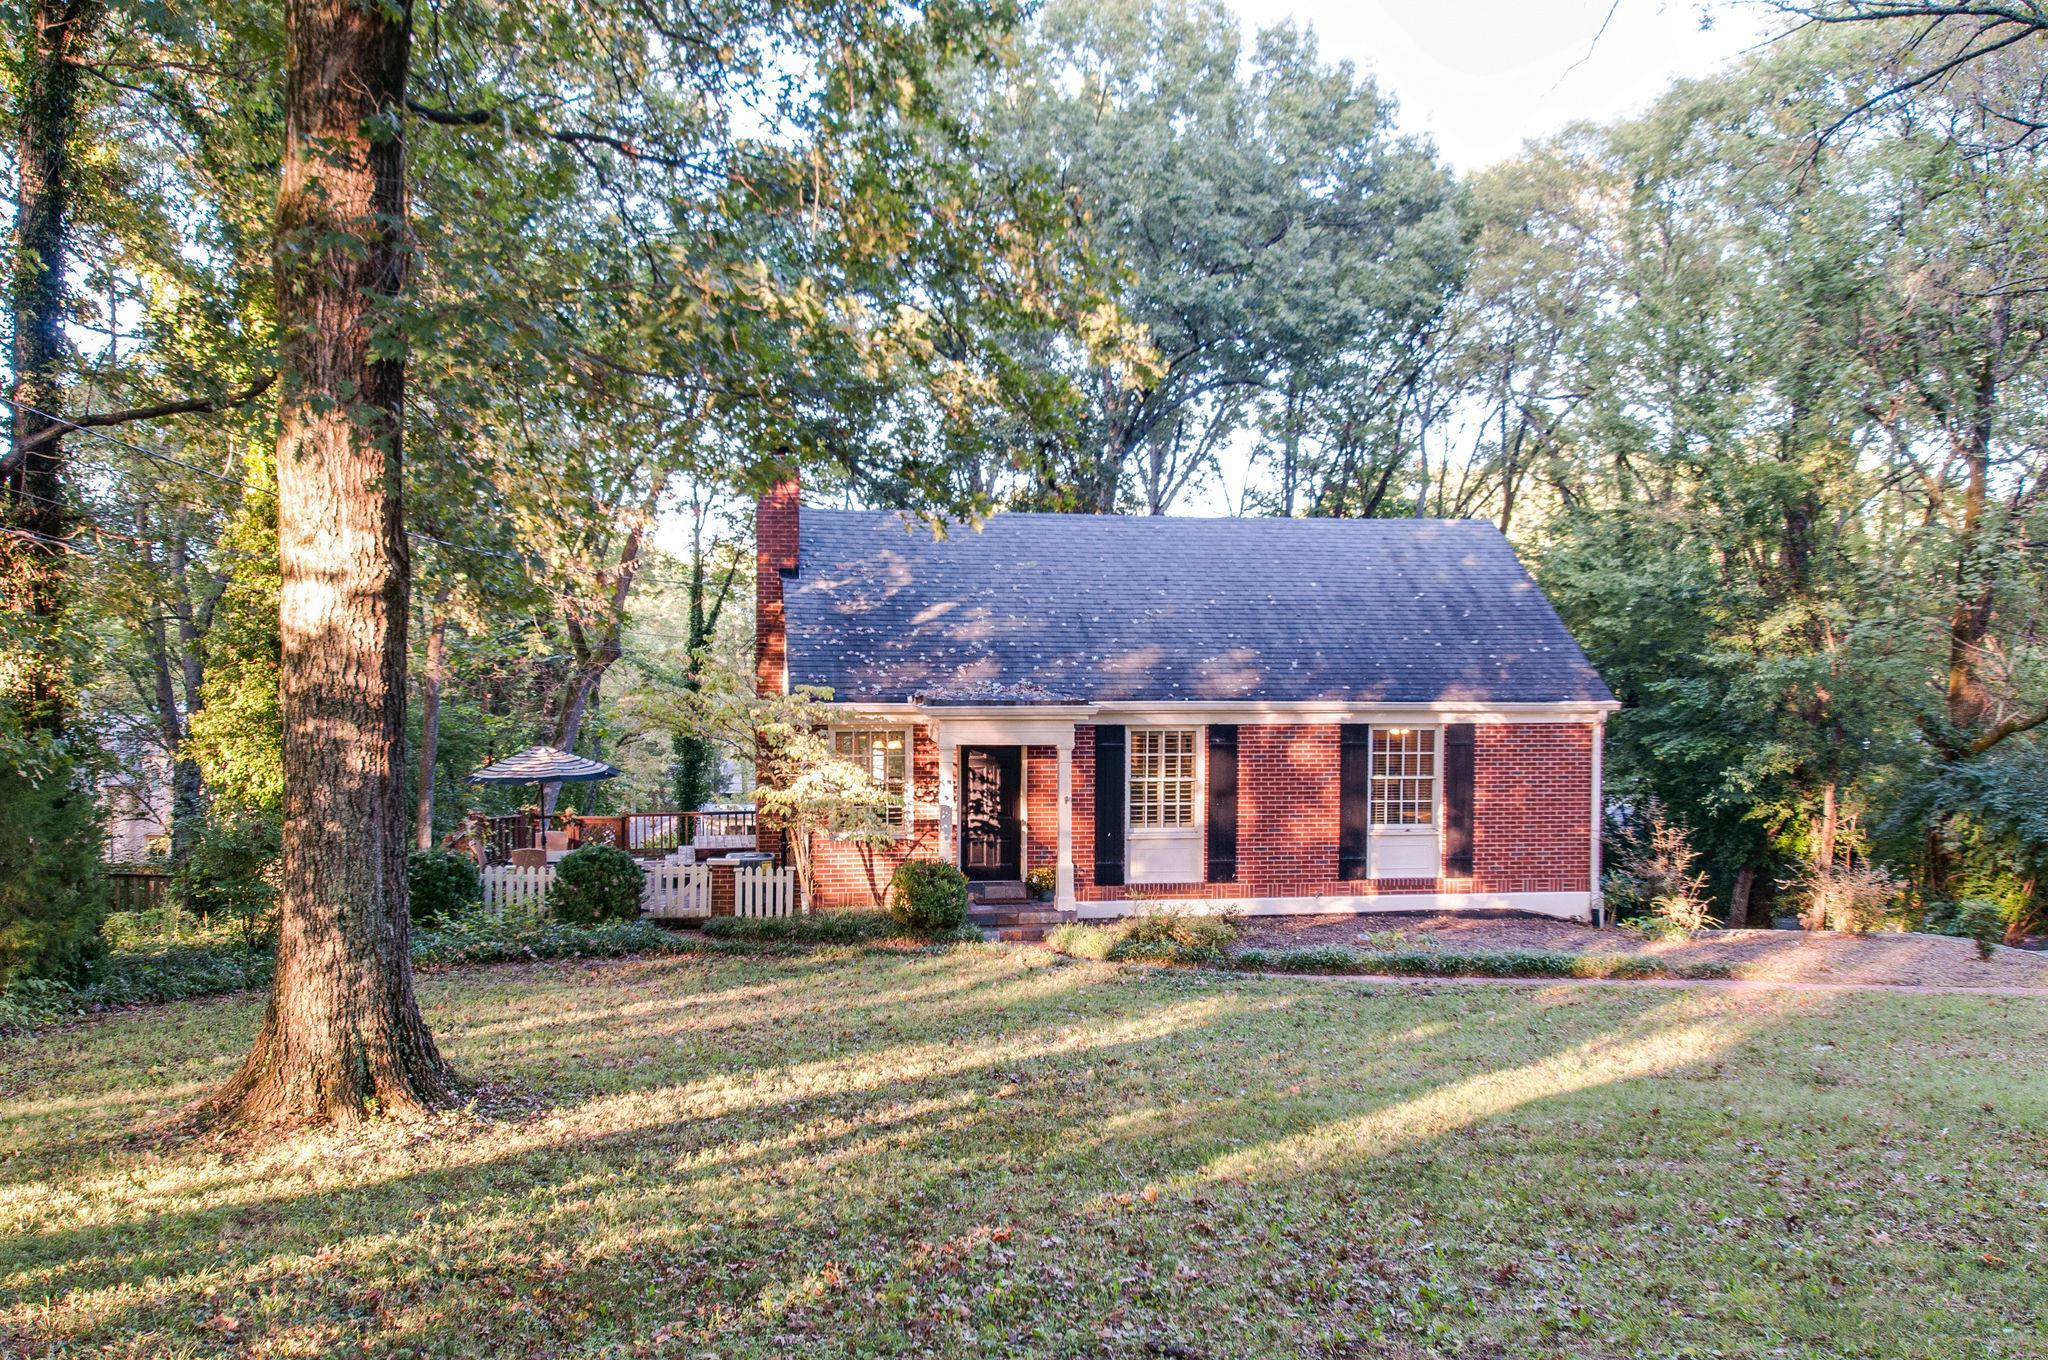 4314 Sunnybrook Dr, Belle Meade, Tennessee